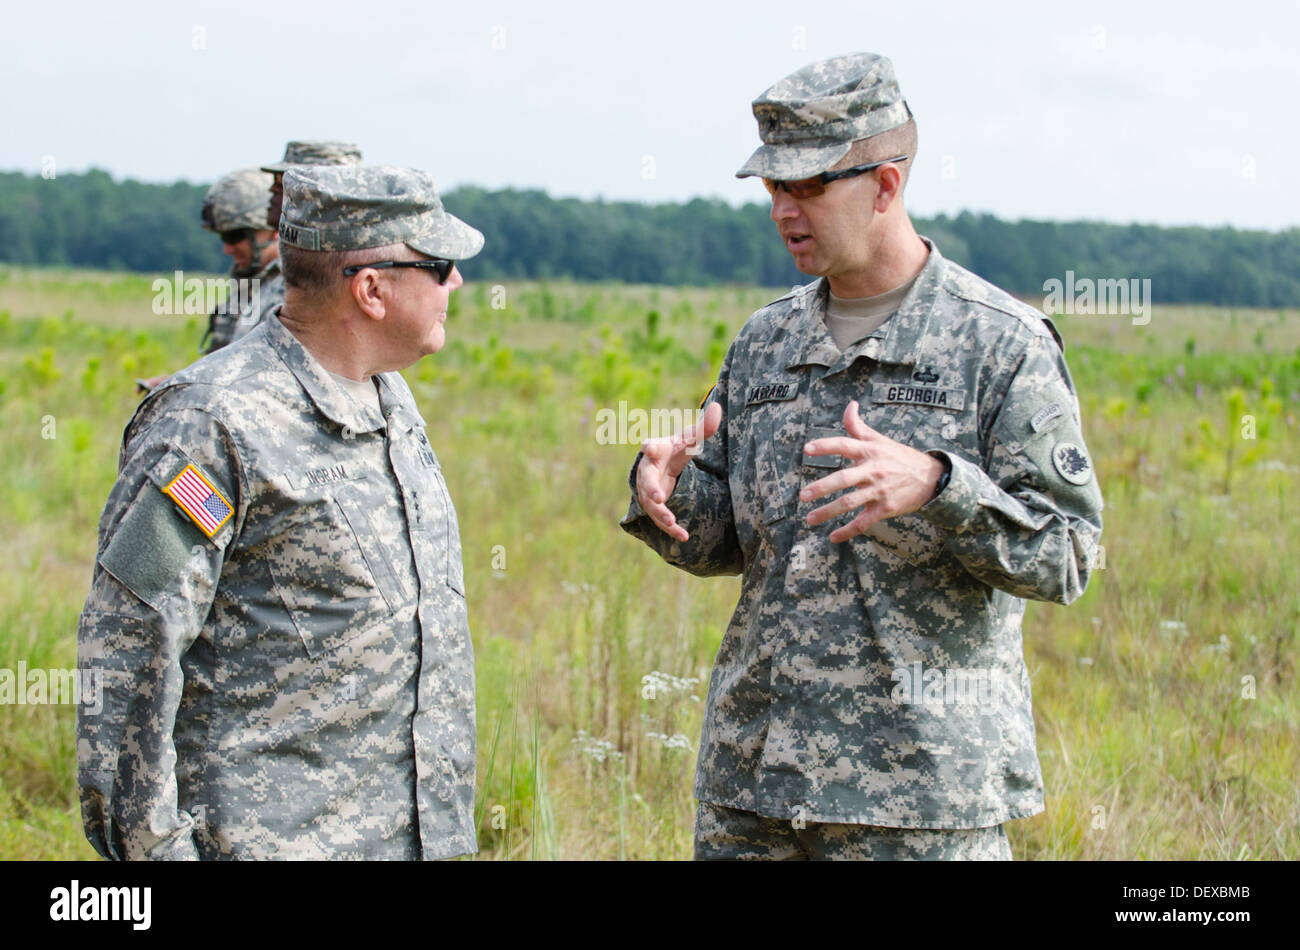 Army National Guard Director Lt. Gen. William Ingram, Jr. and Assistant Adjutant General, Georgia Department of Defense, Brig. G - Stock Image